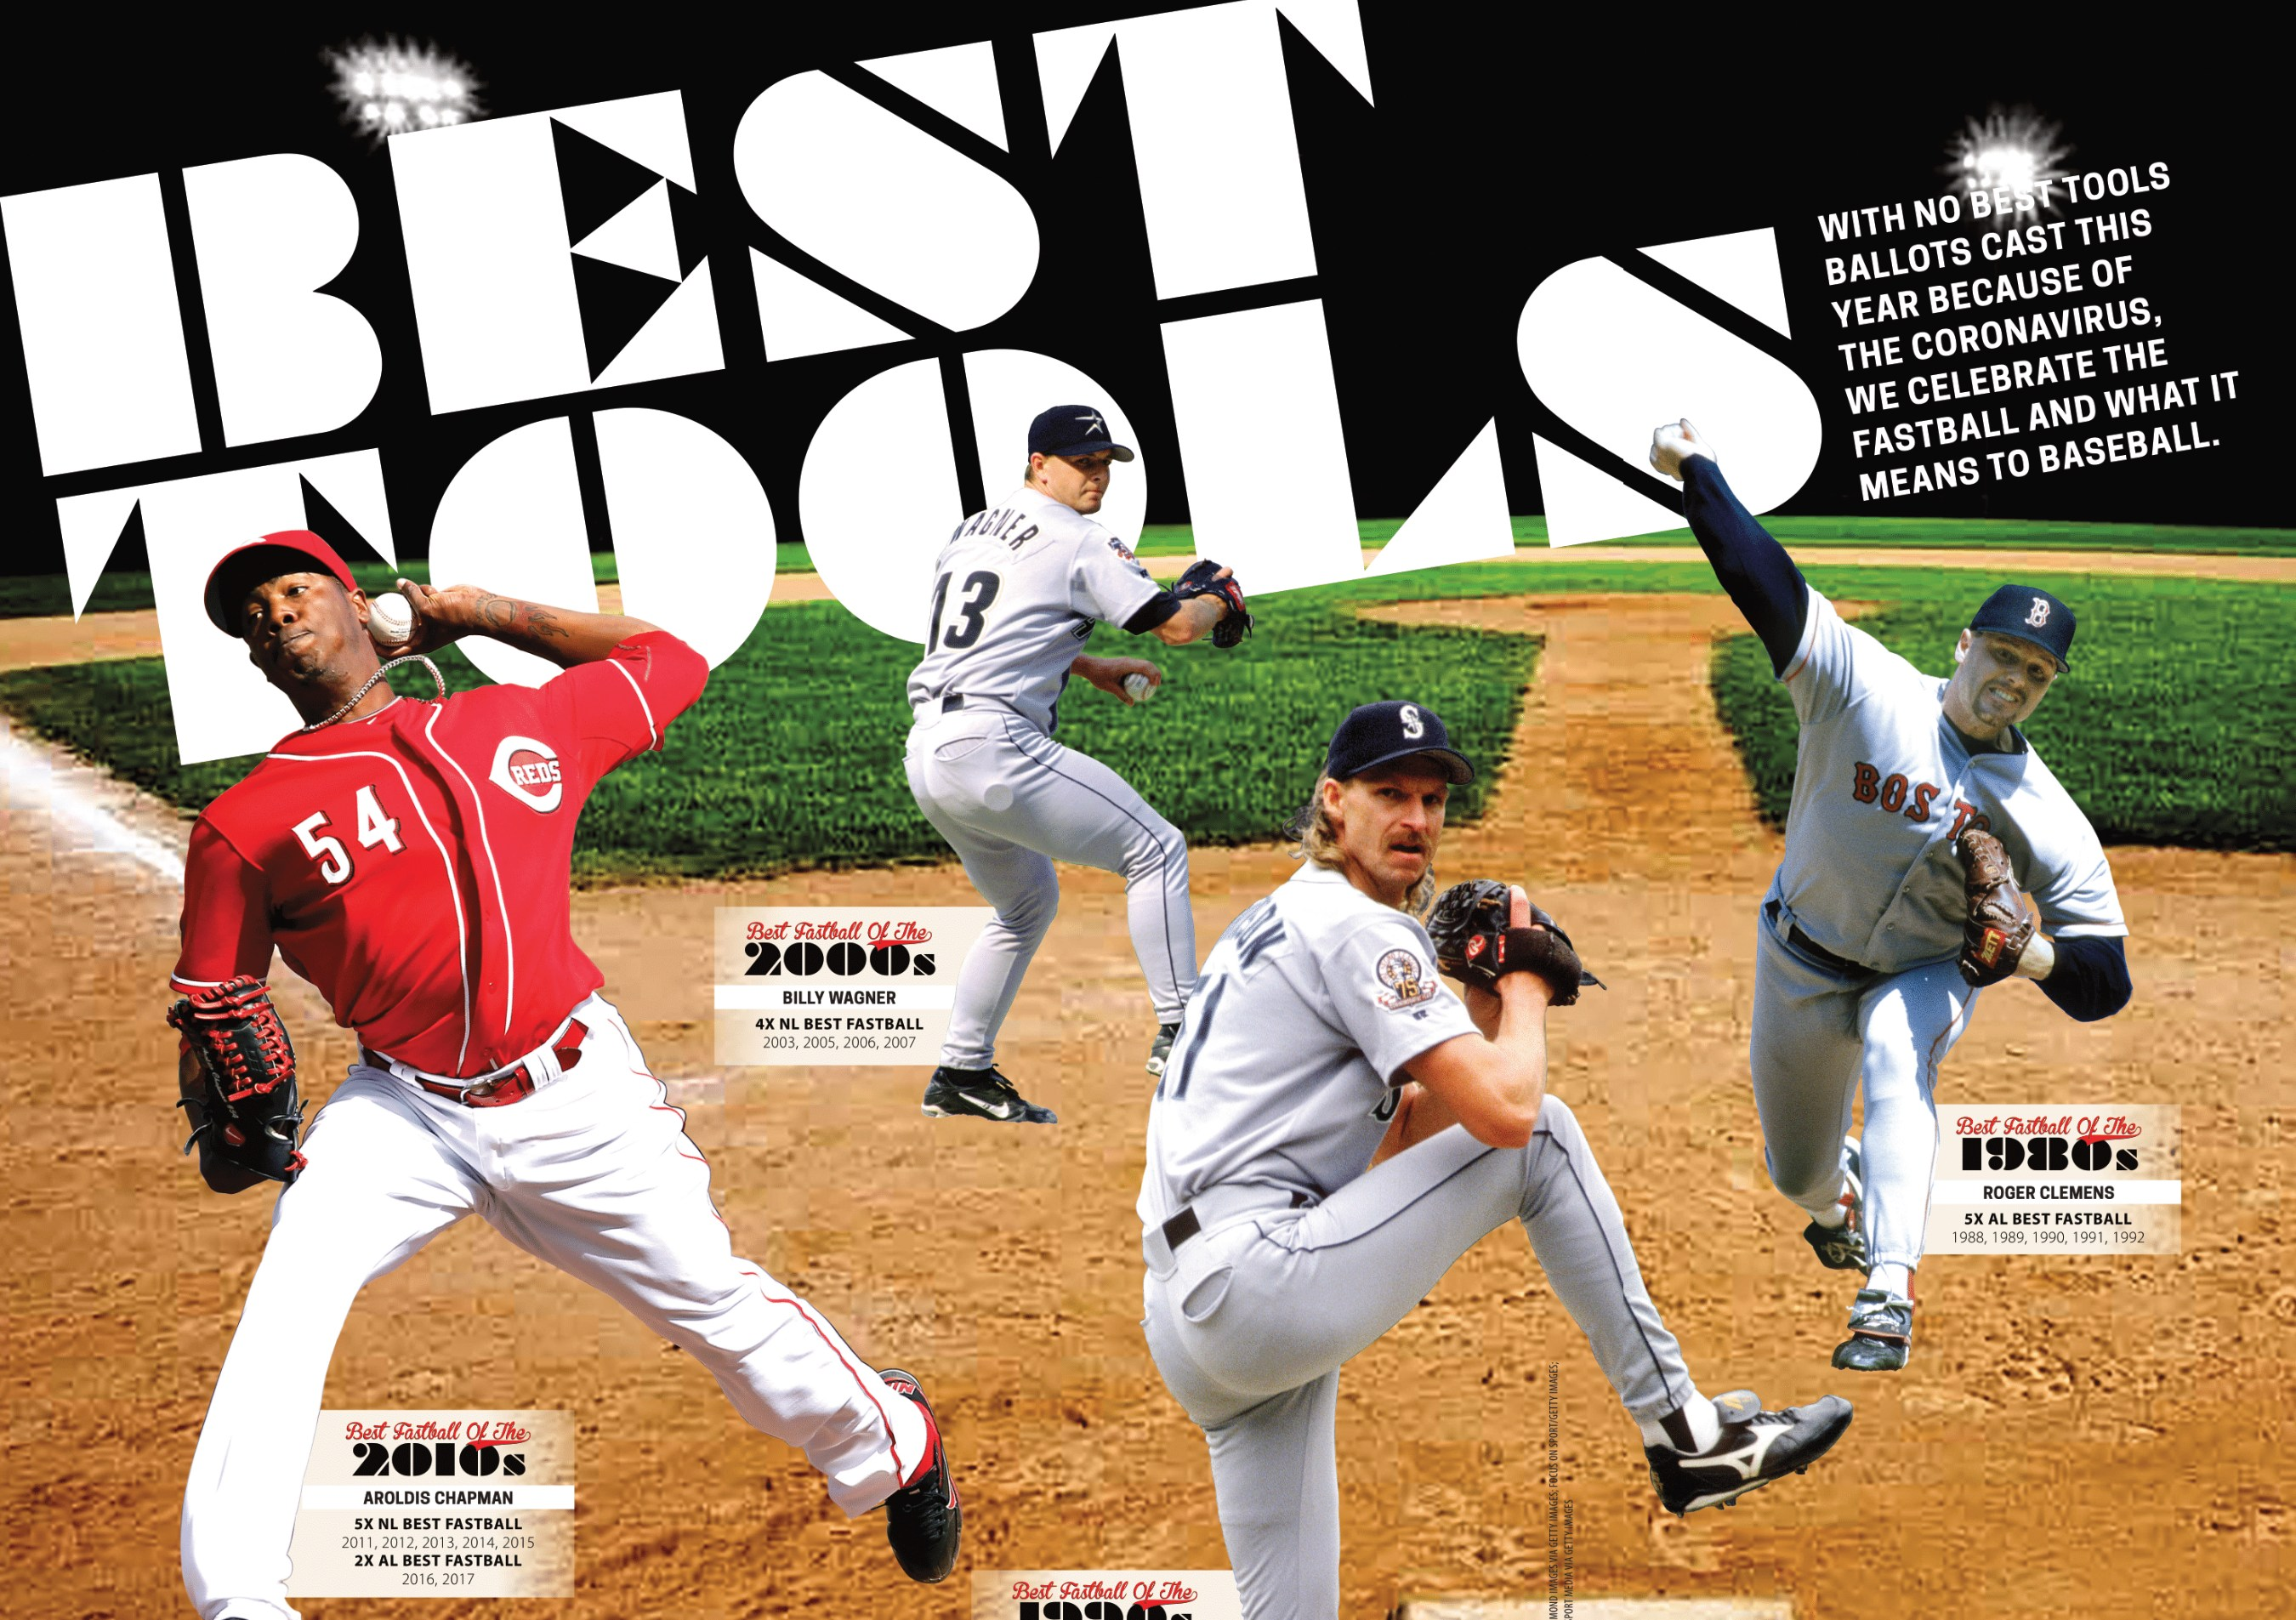 The Toolsiest MLB Players Of The Past 30 Years